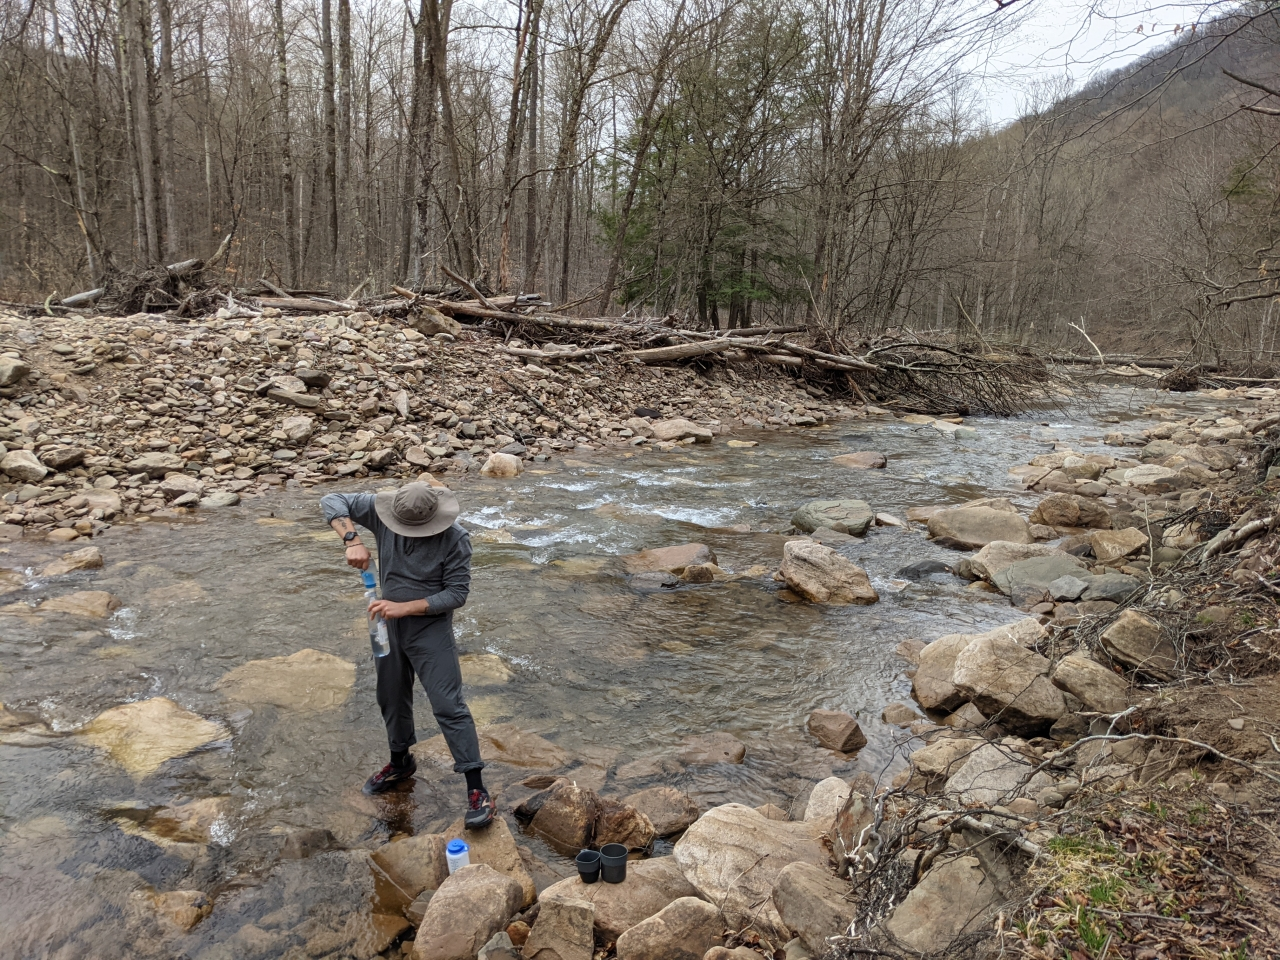 Photo of Brett standing in the stream filtering water into a bottle